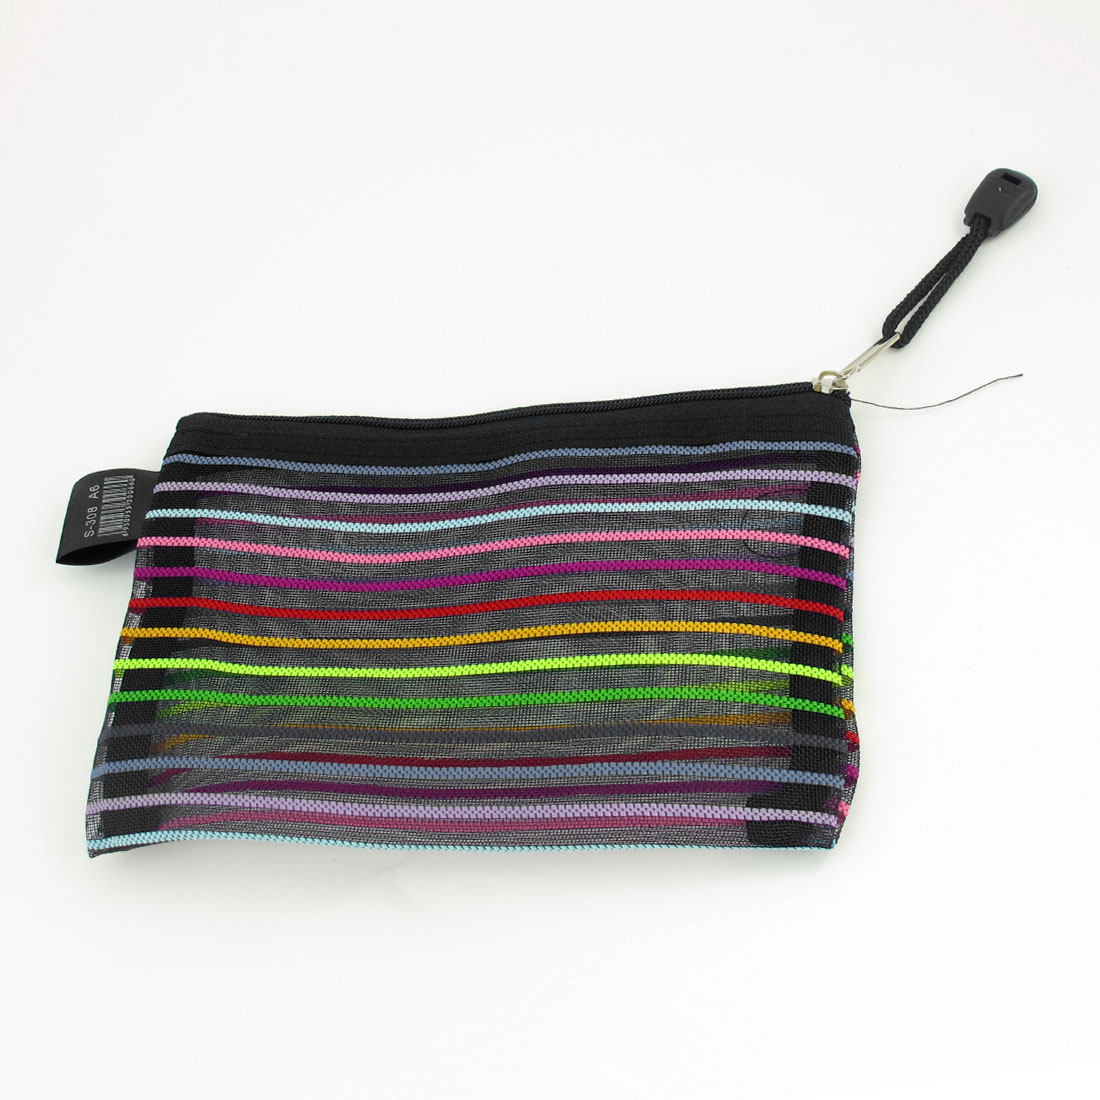 Zip up Multicolored Stripes Black Stationery File Bag Pocket